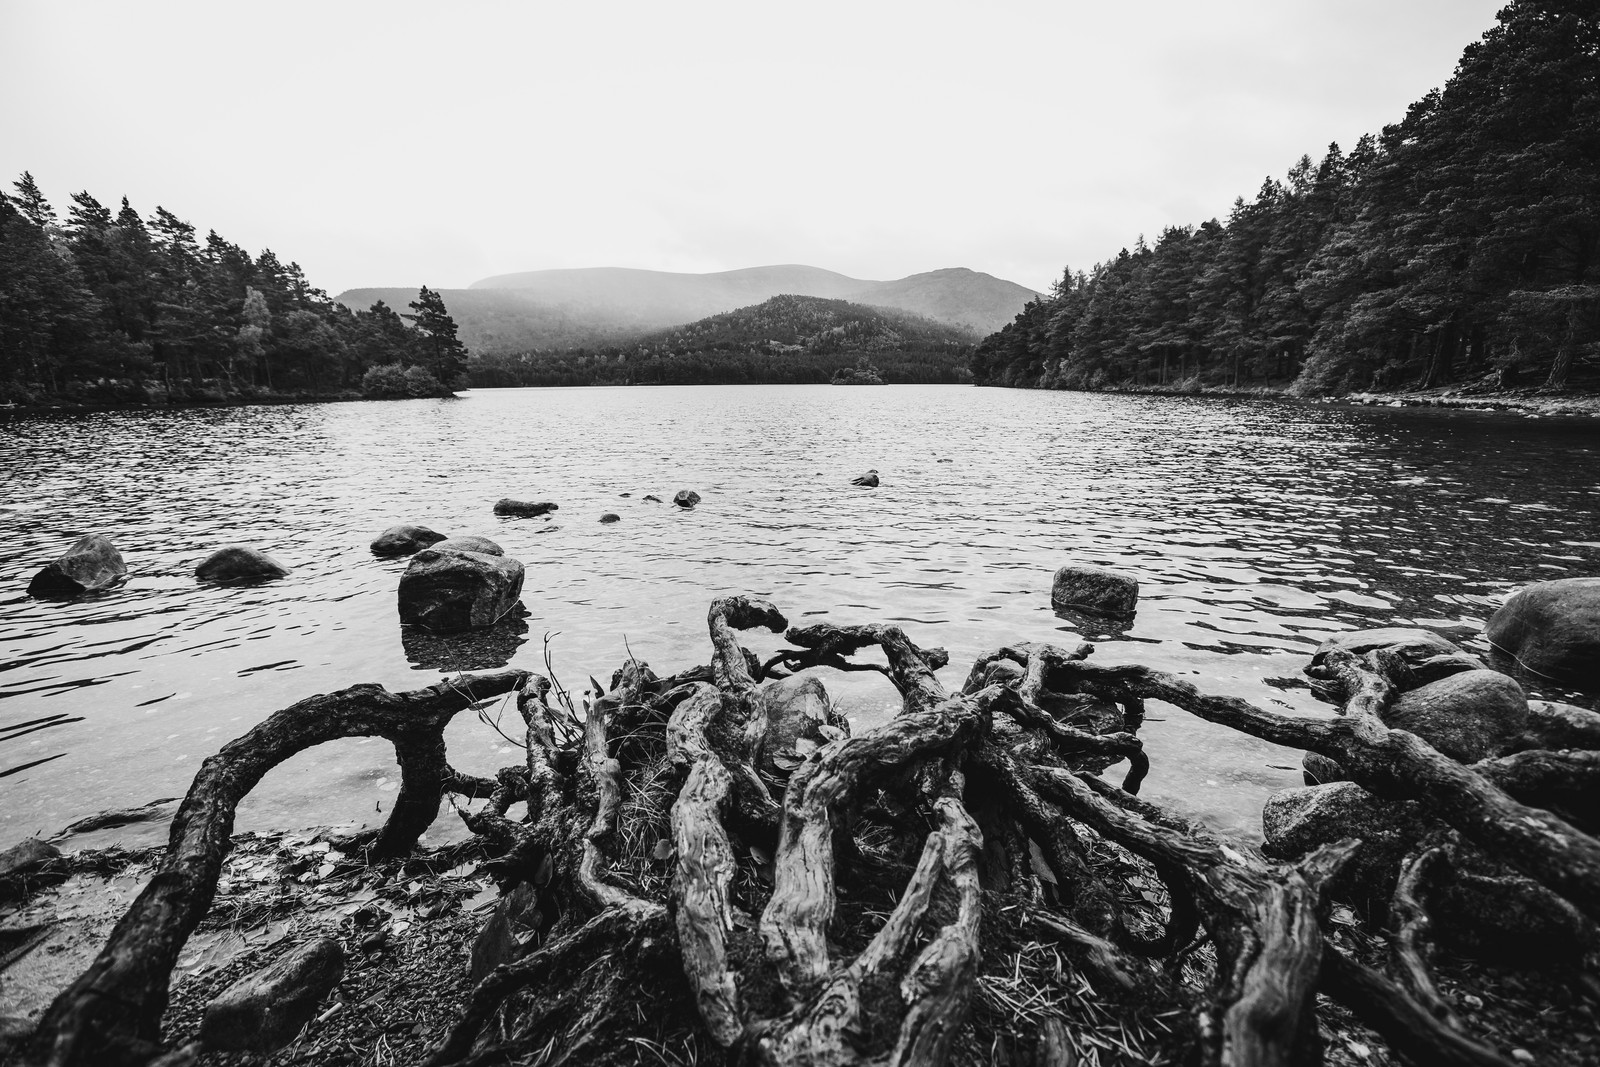 loch-an-eilen-lake-roots